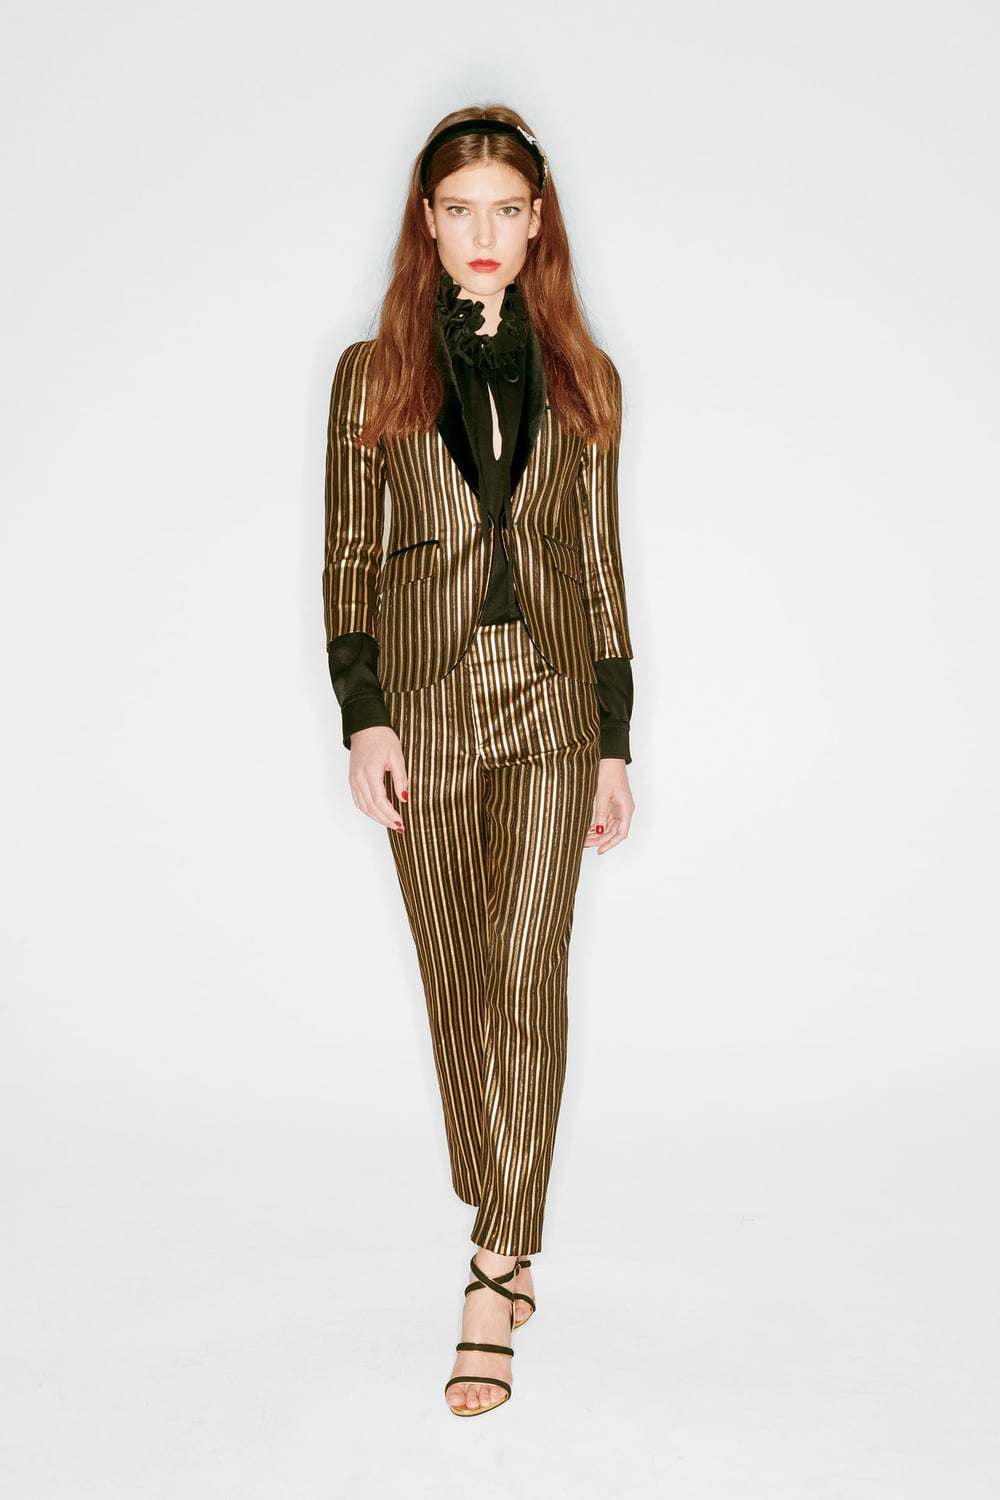 sonia_rykiel_pre_fall_2016_look_book_21.jpg